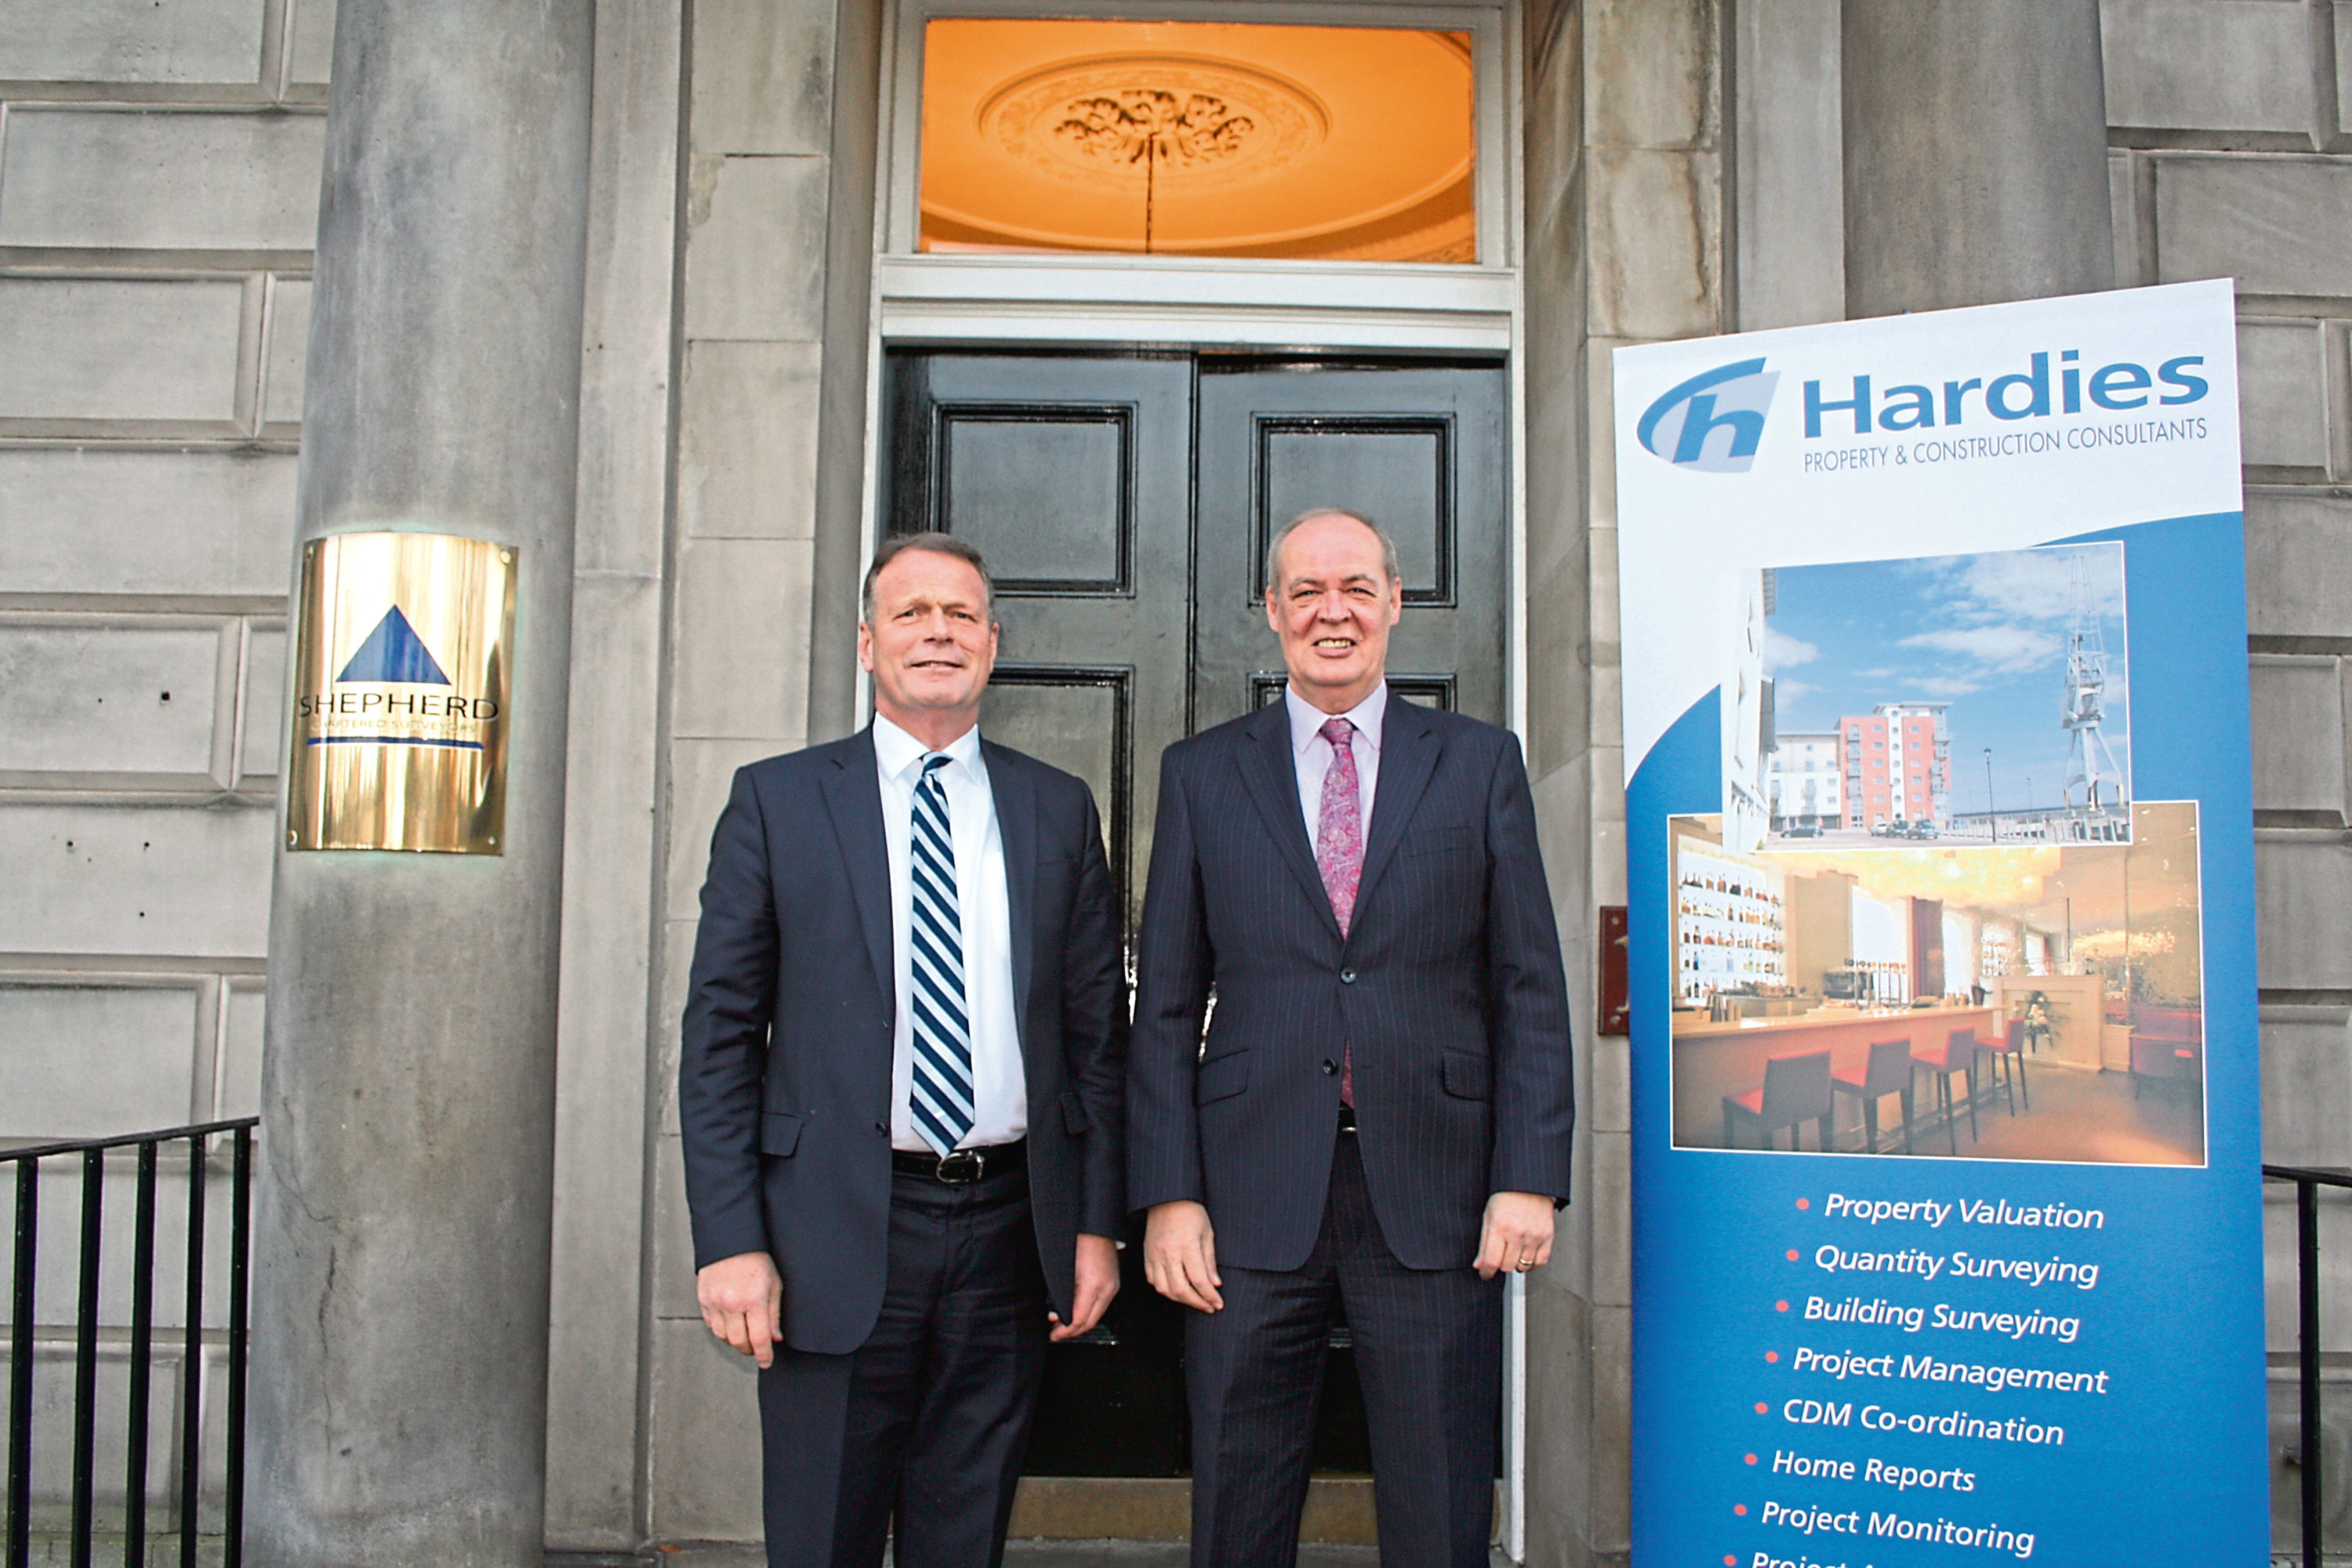 Shepherd senior partner George Brewster (left) with Derek Ferrier, managing partner of Hardies.